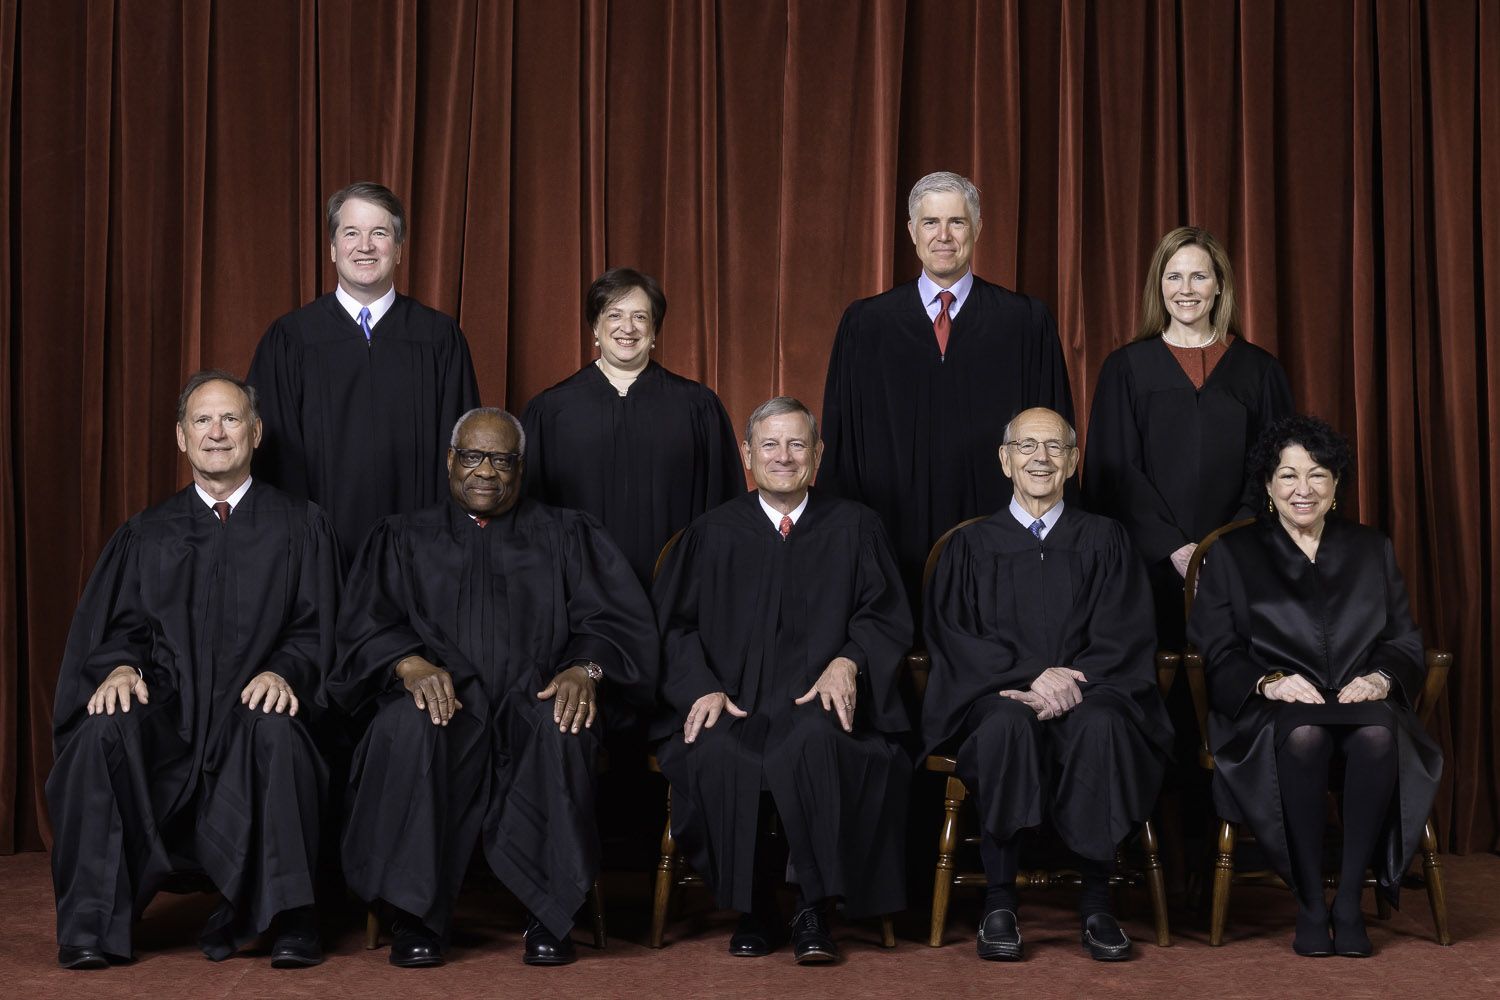 Religious Liberty Wins Unanimous Victory at U.S. Supreme Court